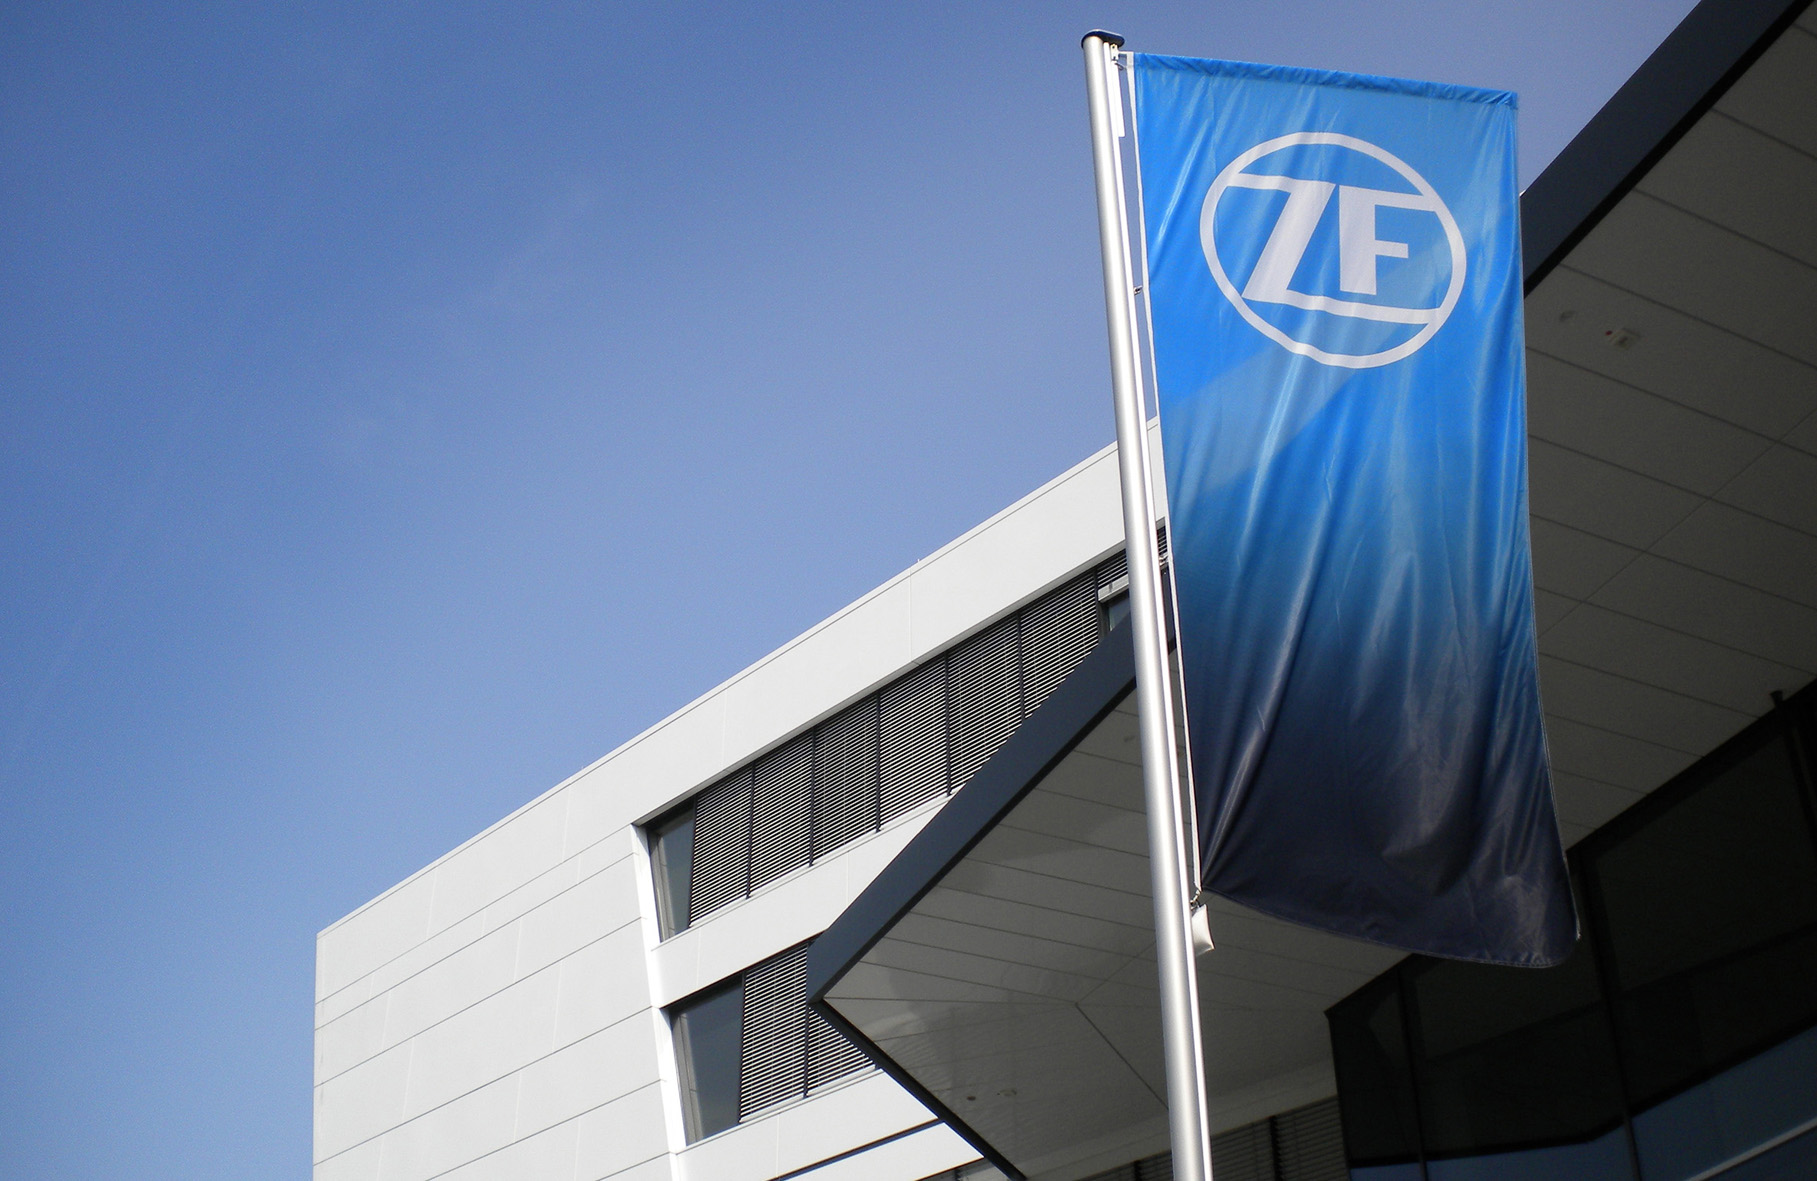 ZF in Cina